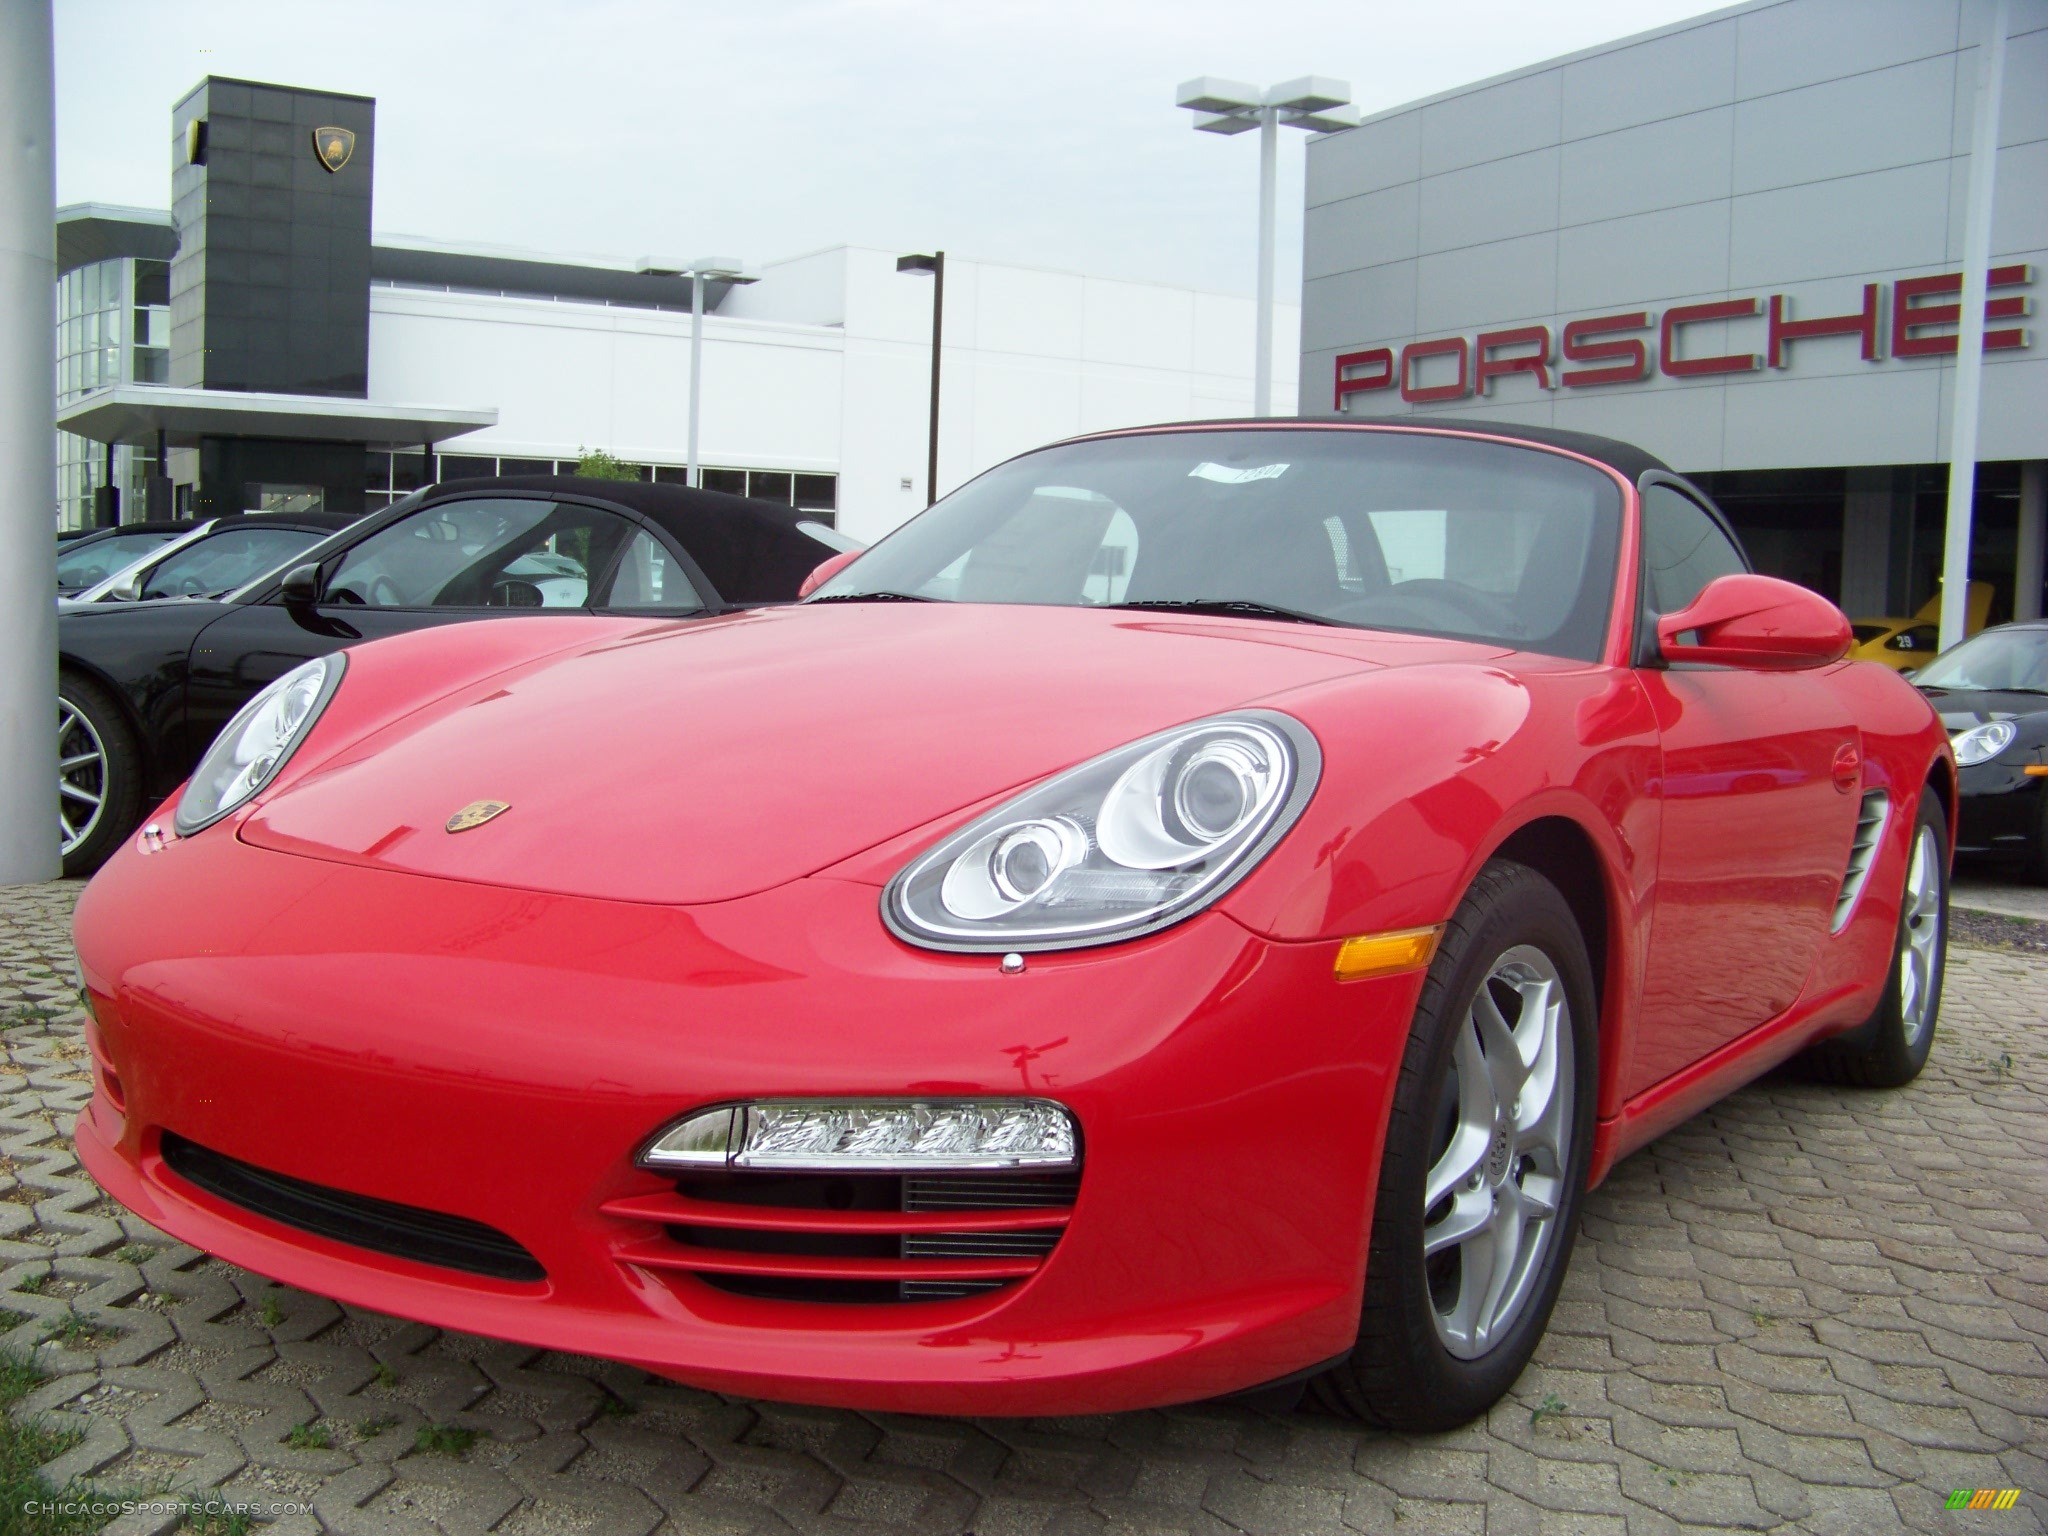 2009 porsche boxster in guards red 710104 cars for sale in illinois. Black Bedroom Furniture Sets. Home Design Ideas